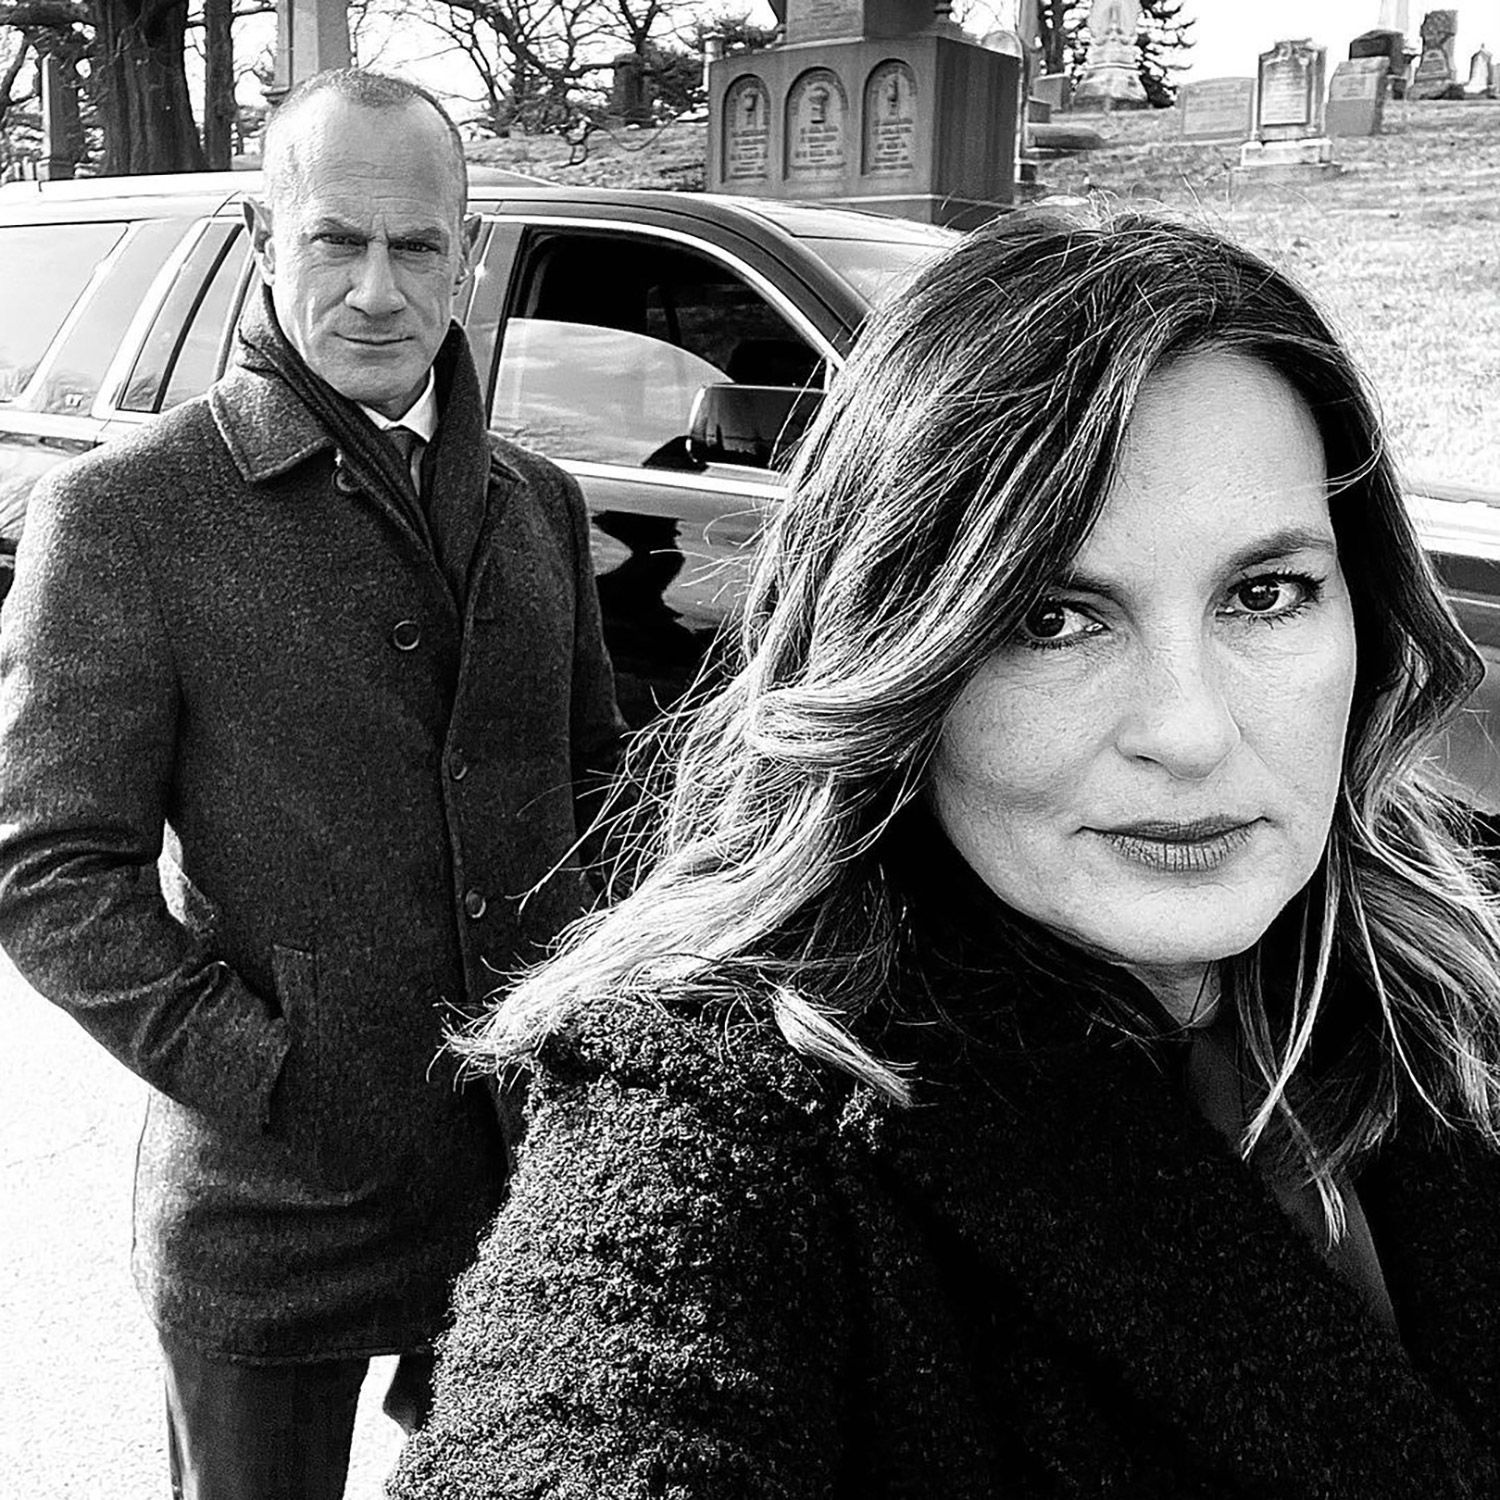 Mariska Hargitay Poses With Christopher Meloni On Law Order Spinoff Set It S All Happening In 2021 Law And Order Chris Meloni Mariska Hargitay